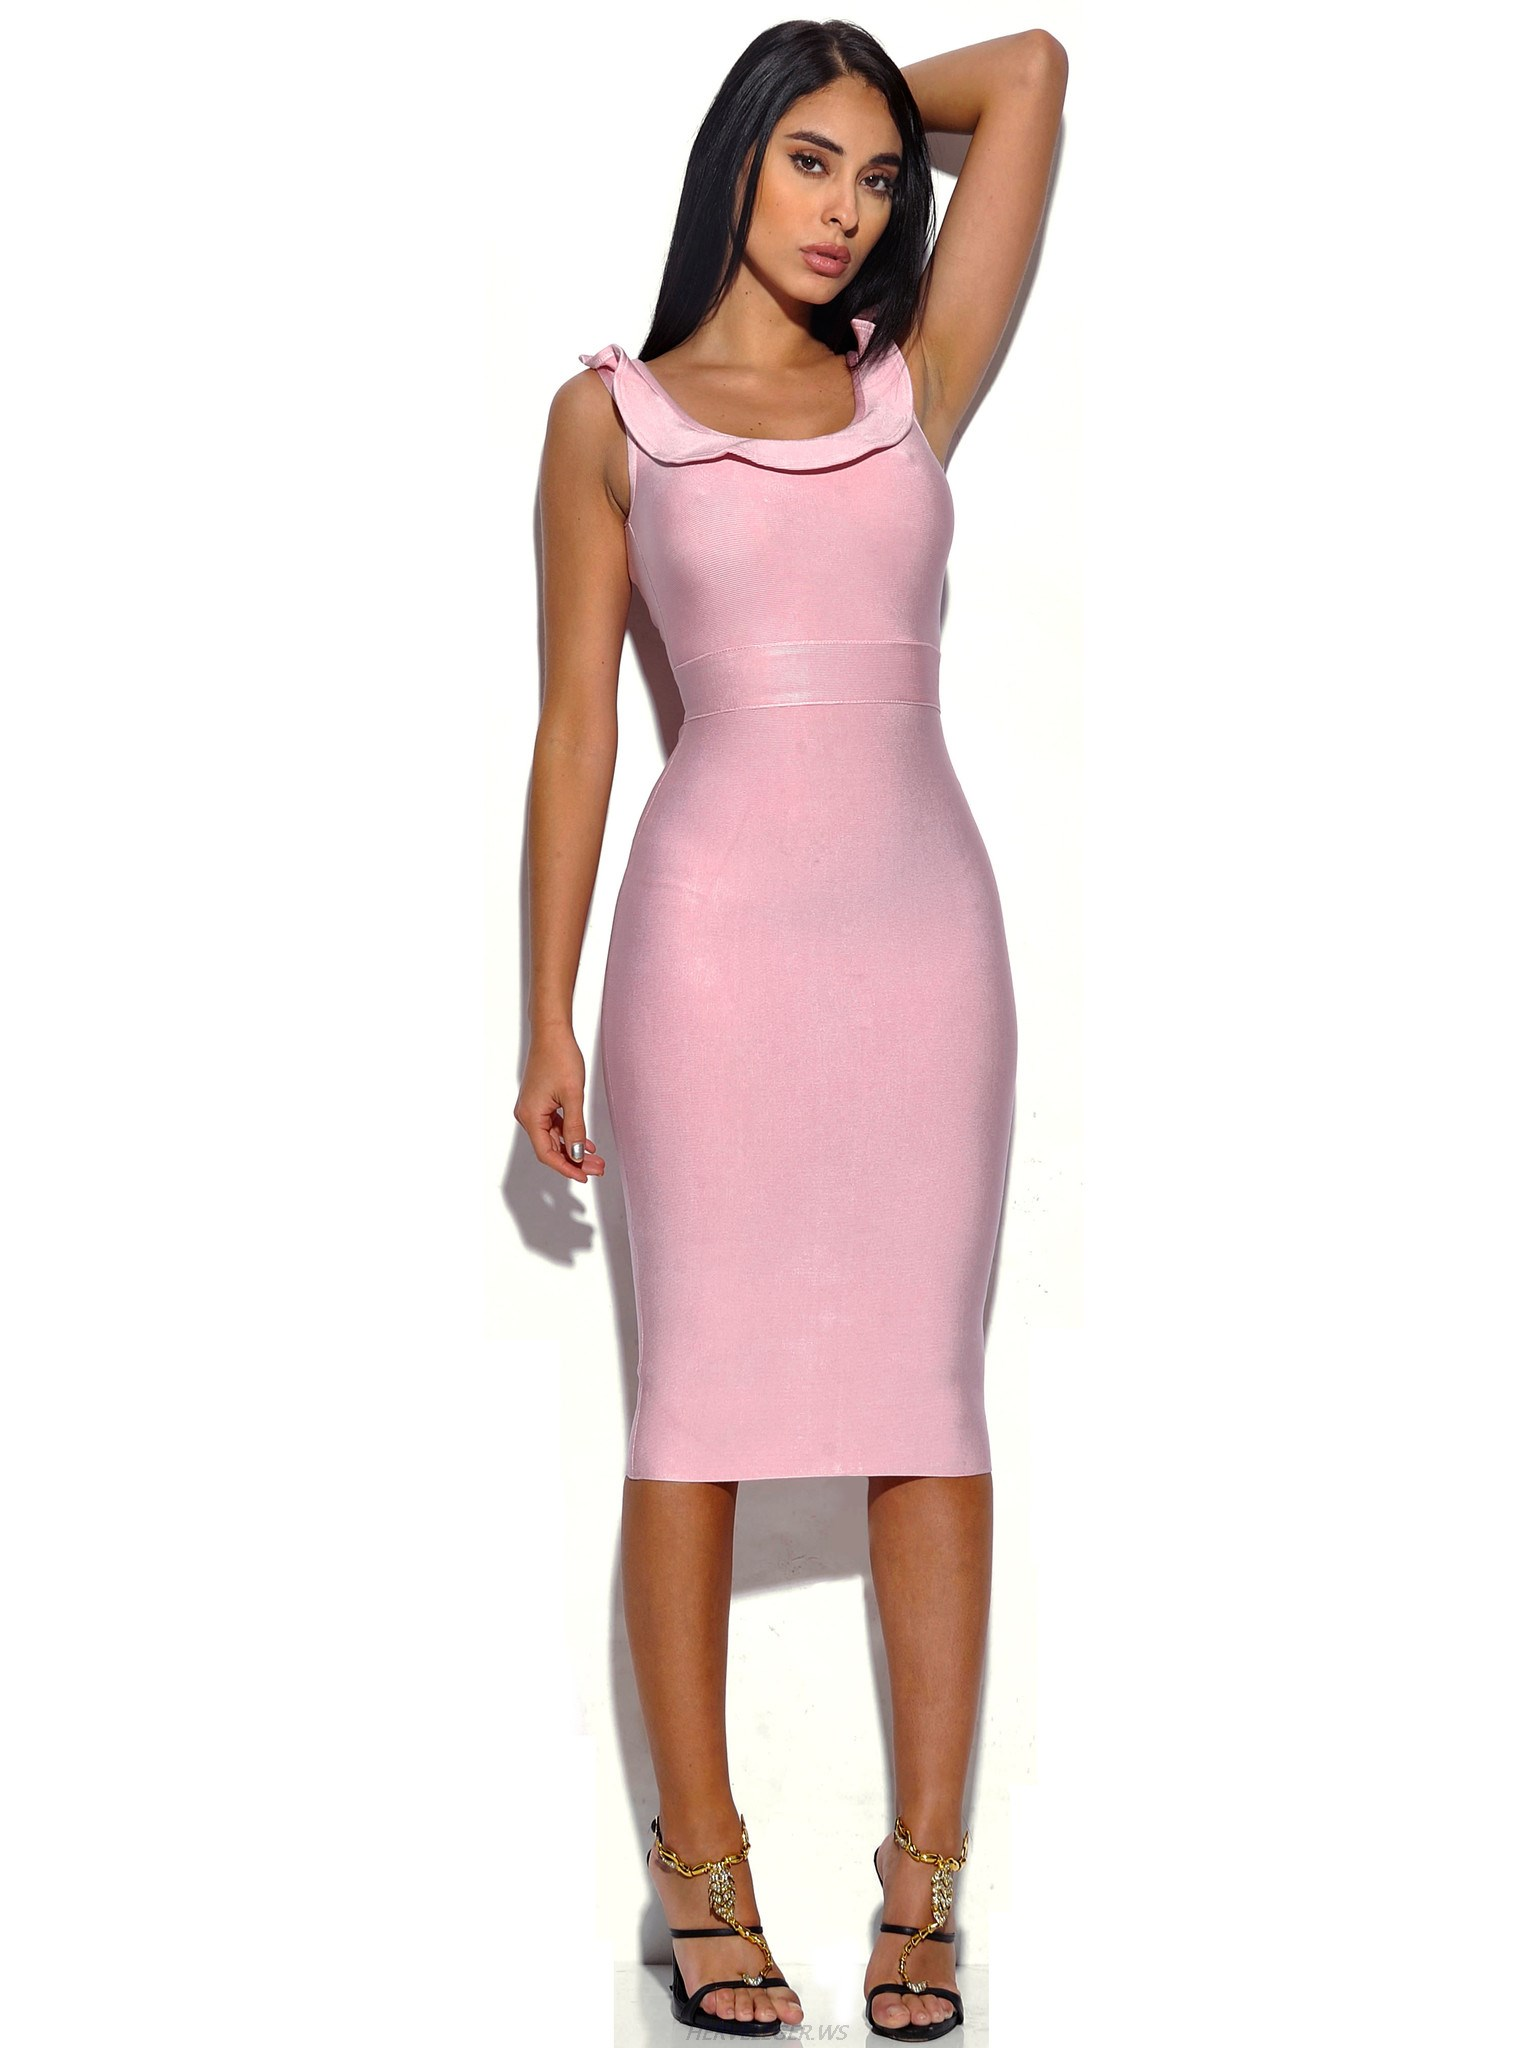 Herve Leger Pink Ruffle Neckline Dress